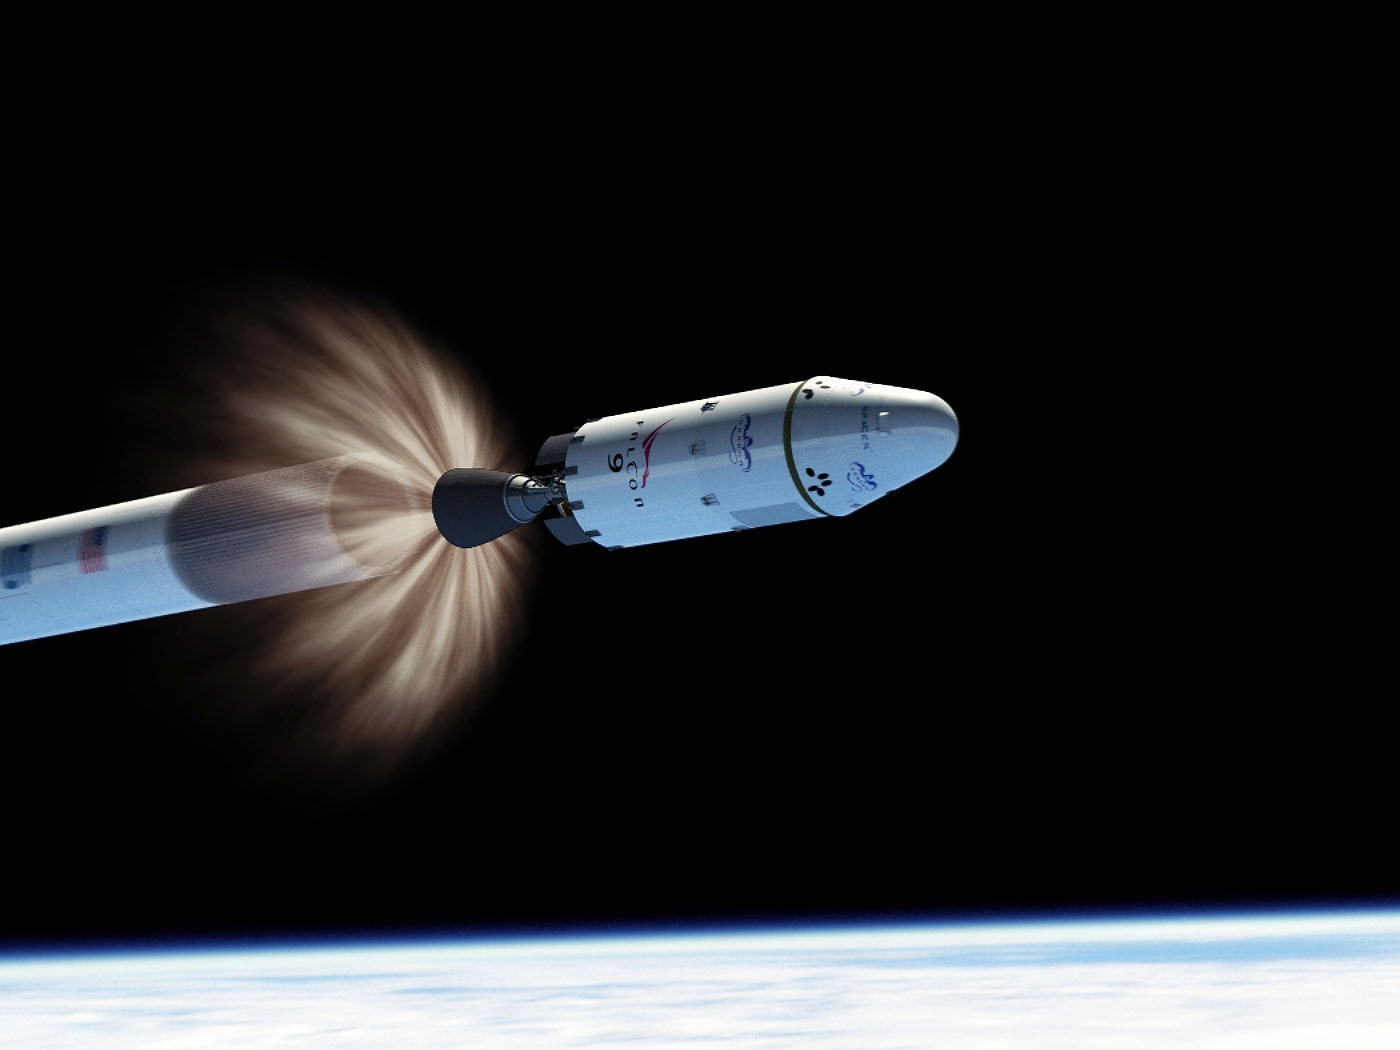 NASA - SpaceX Transitions to Third Commercial Crew Phase